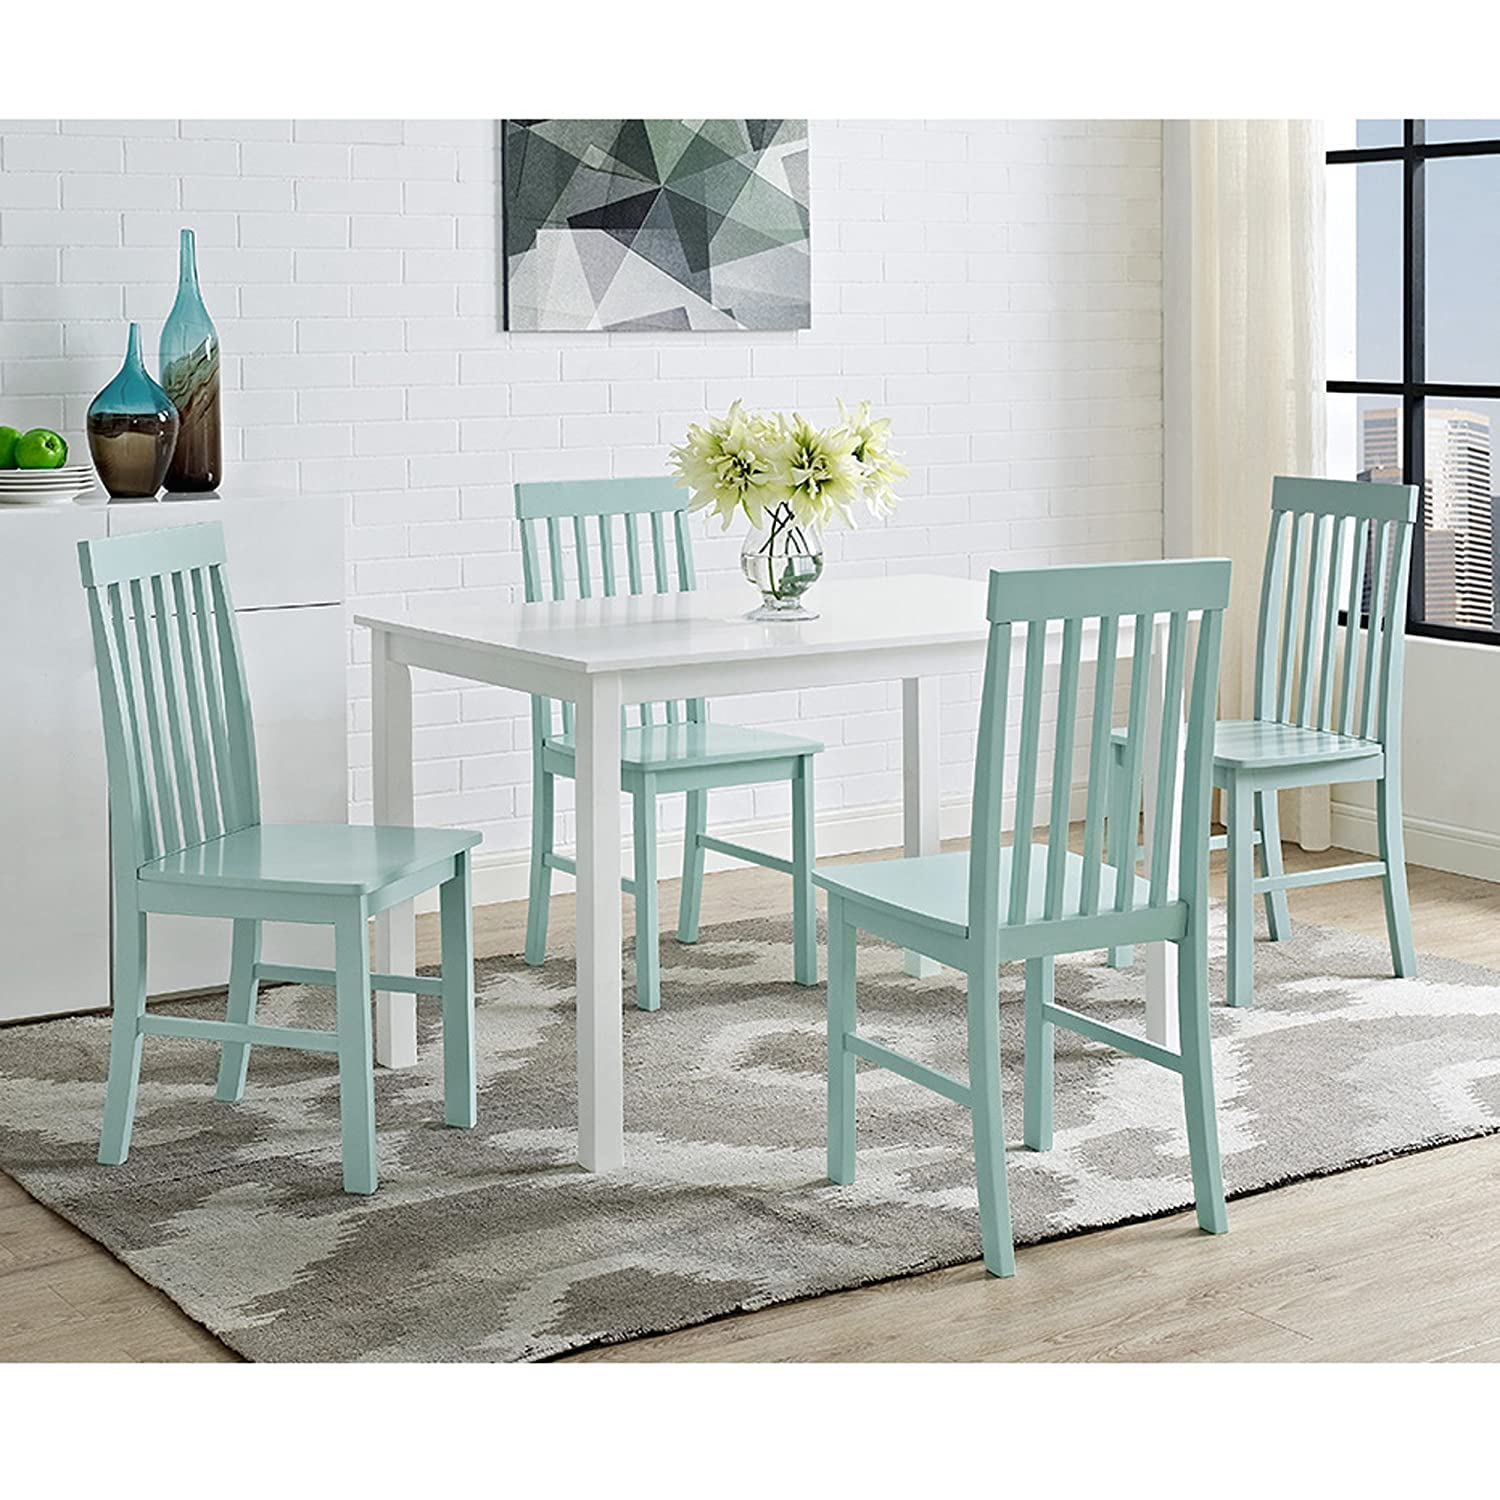 Ideal Amazon.com - New 5 Piece Chic Dining Set-Table and 4 Chairs-White  NE75